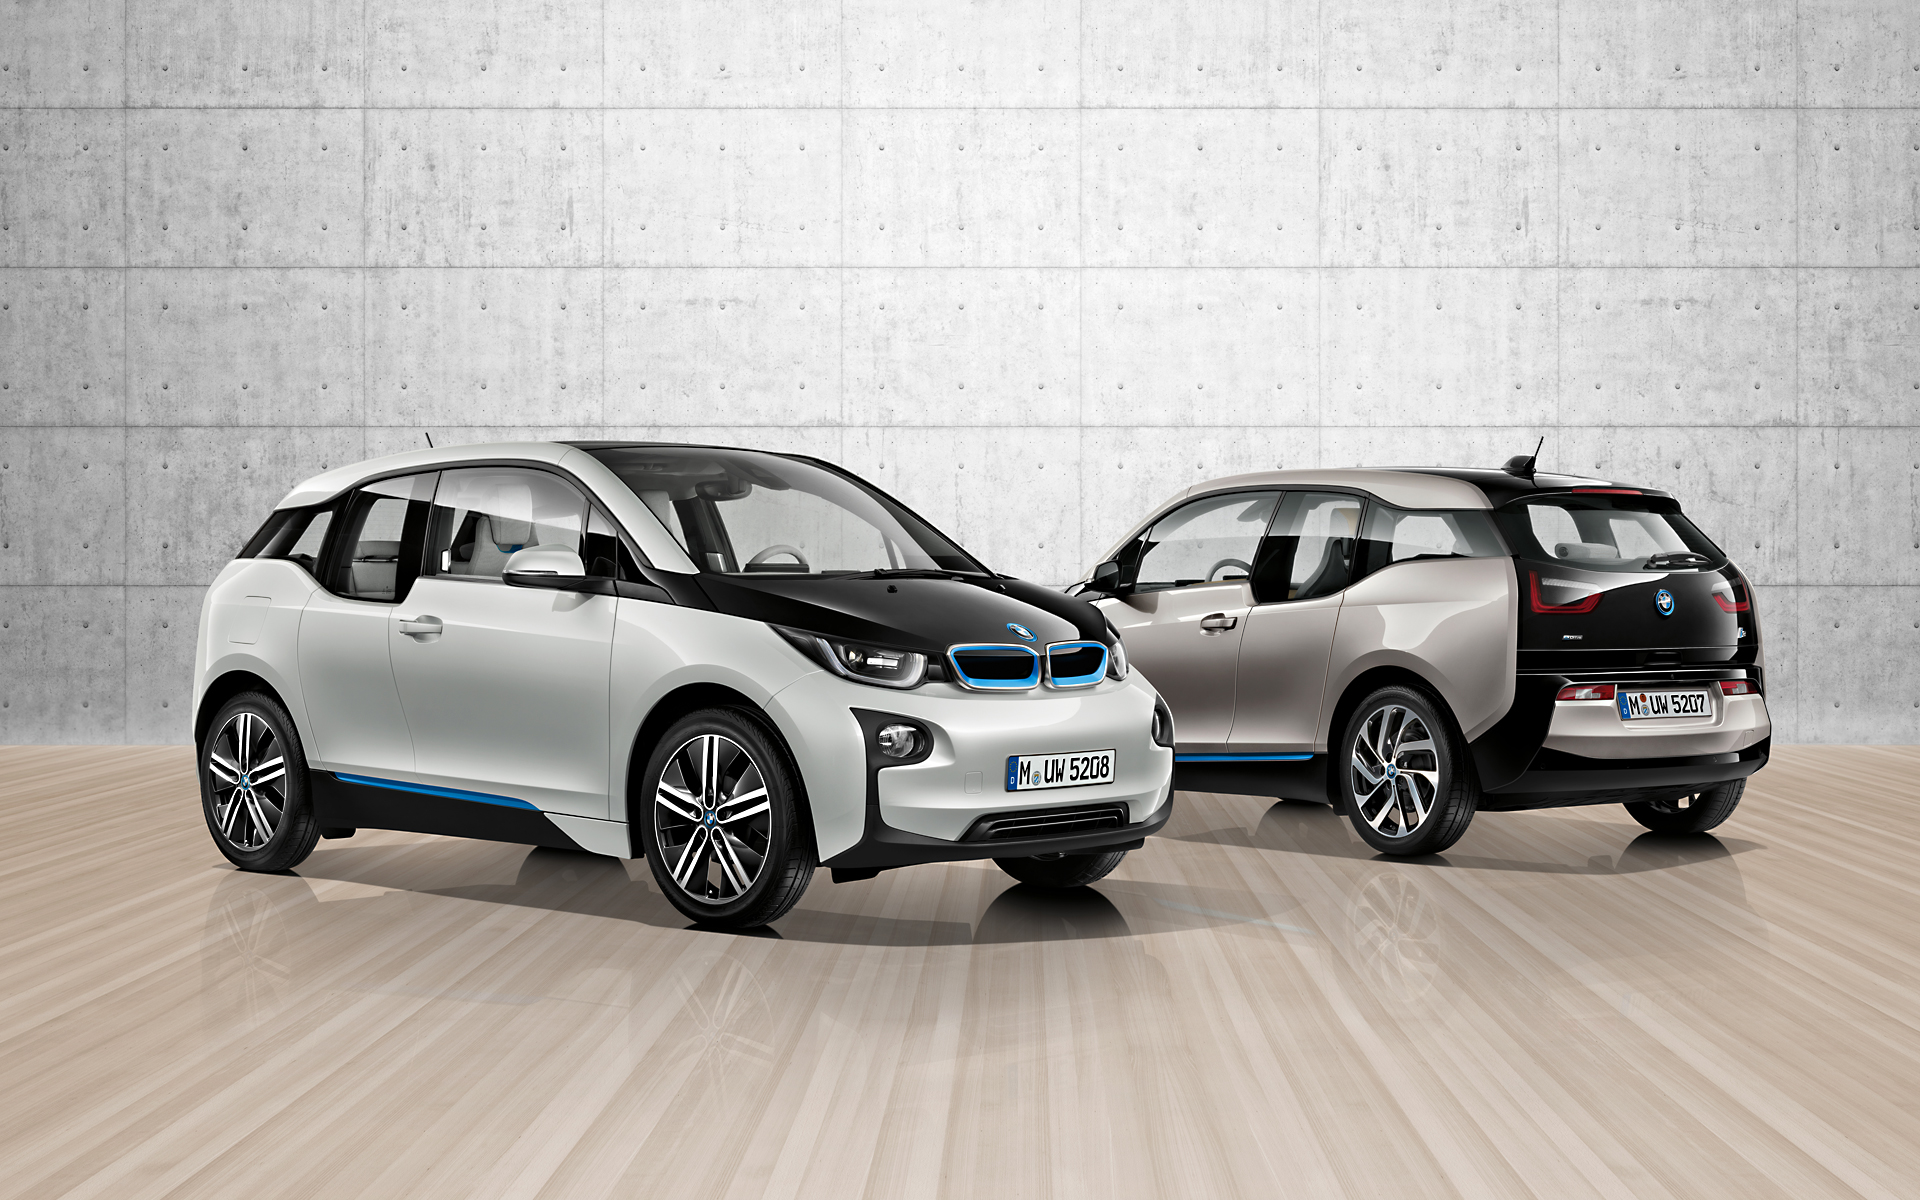 bmw i3 ev praise online criticism from traditional. Black Bedroom Furniture Sets. Home Design Ideas